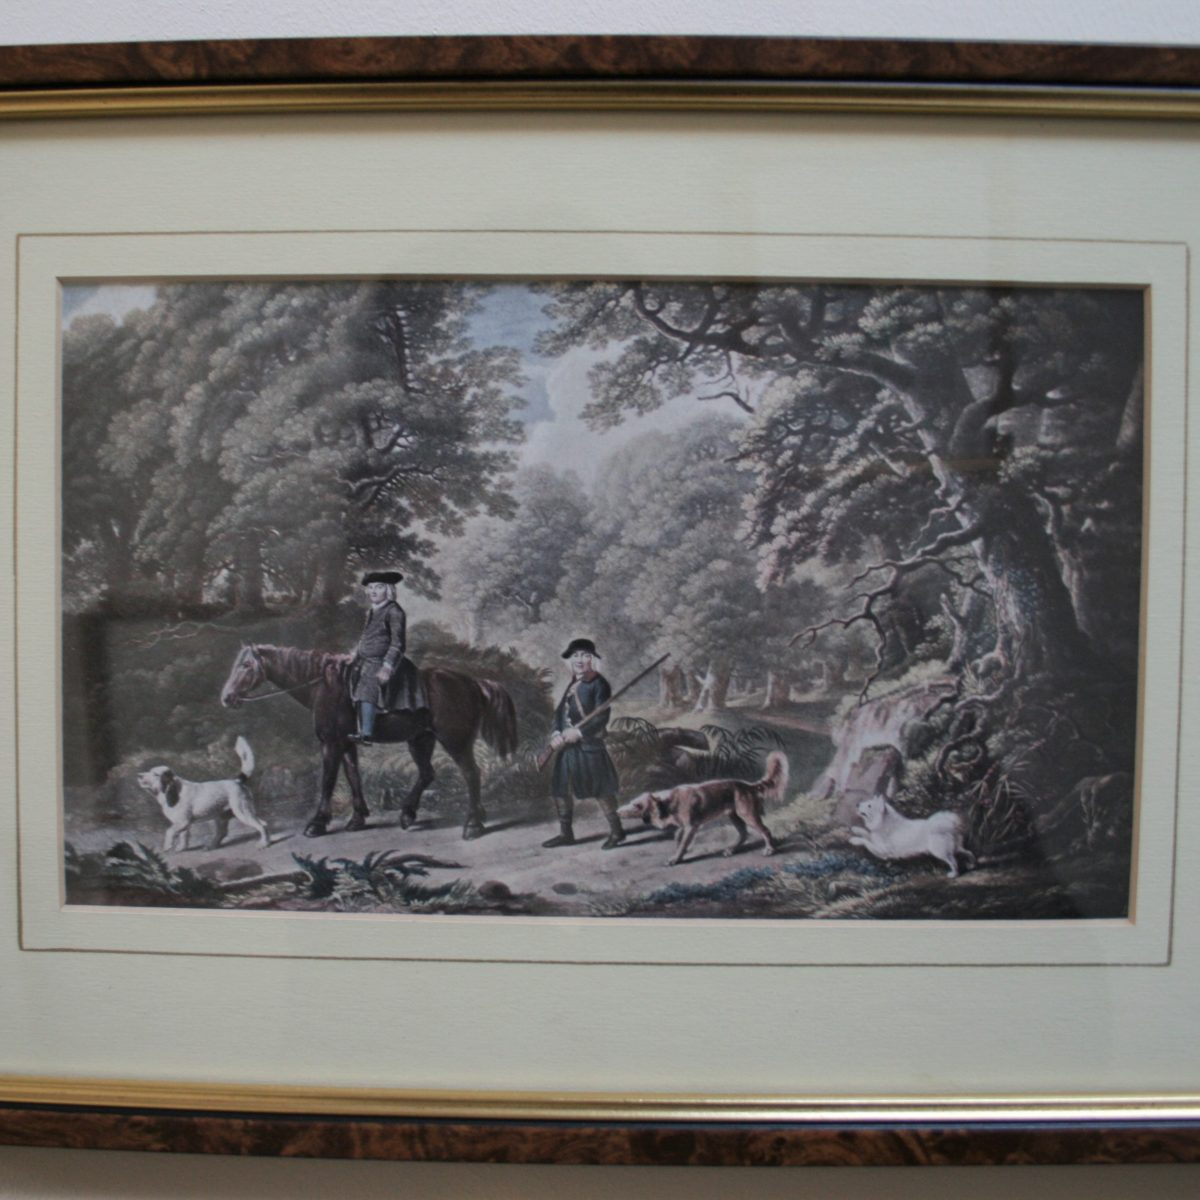 Edwardian print in the country/williamsantiques